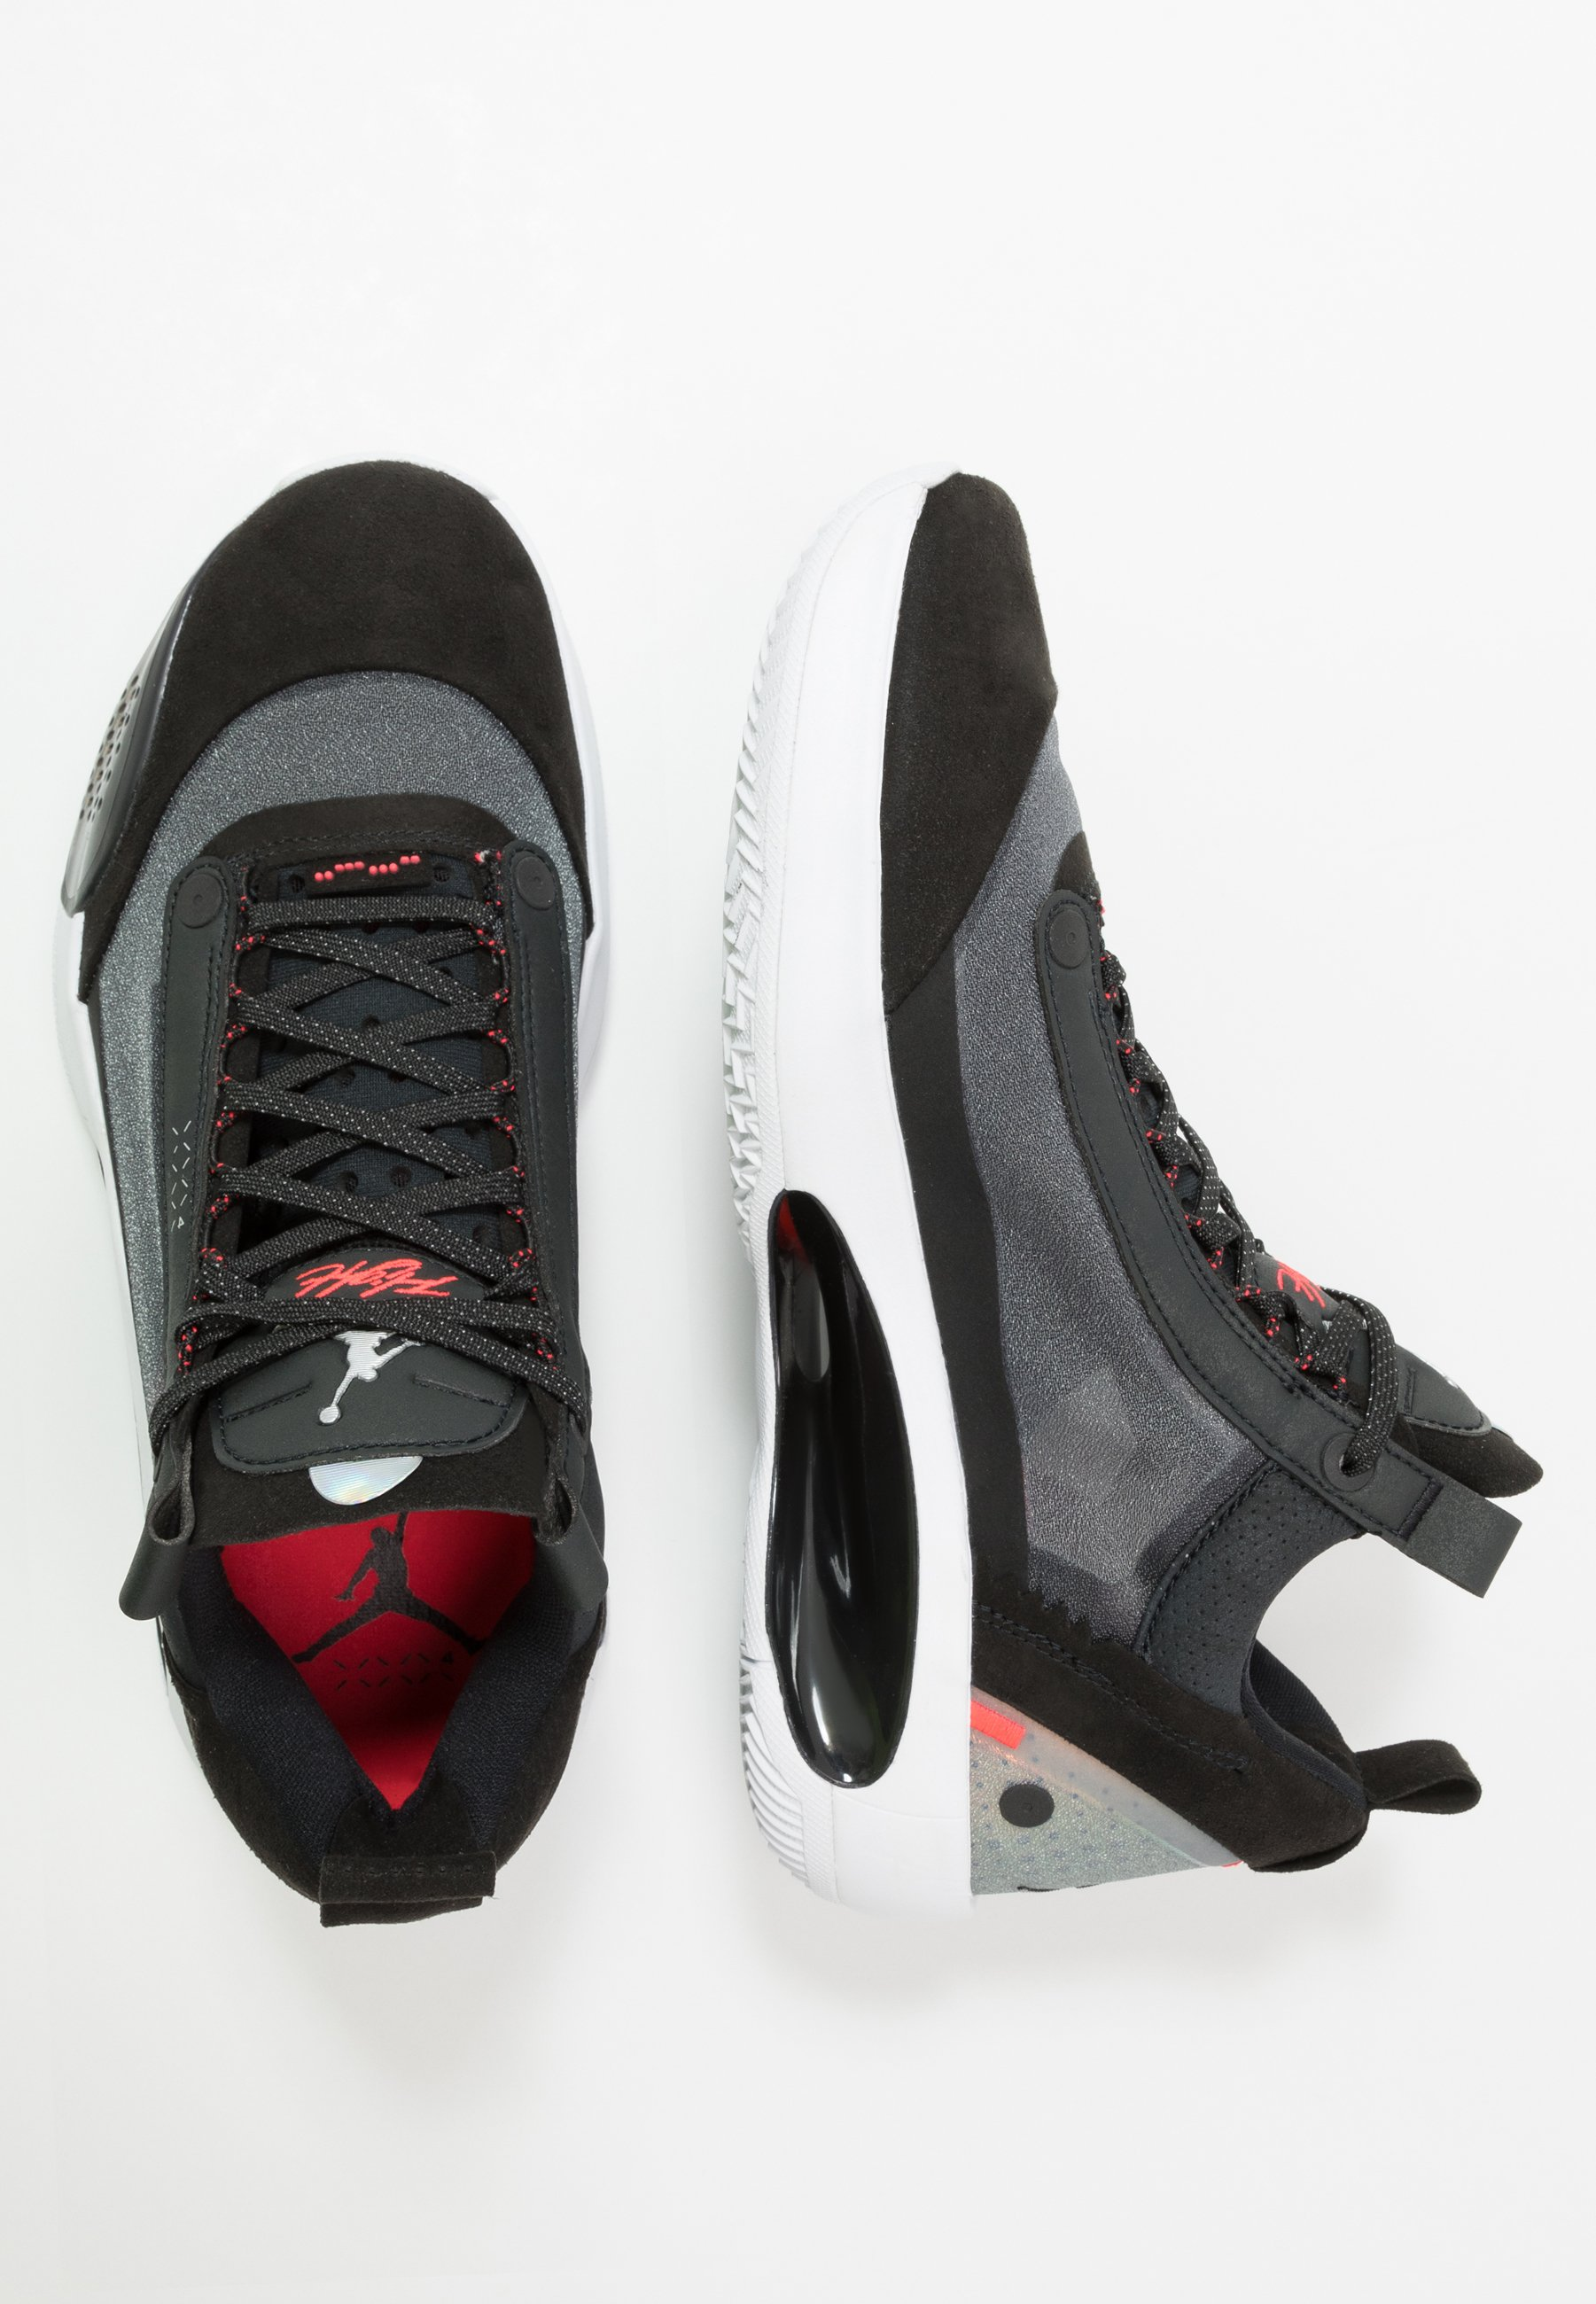 AIR XXXIV LOW Indoorskor blackmetallic silverwhitered orbit